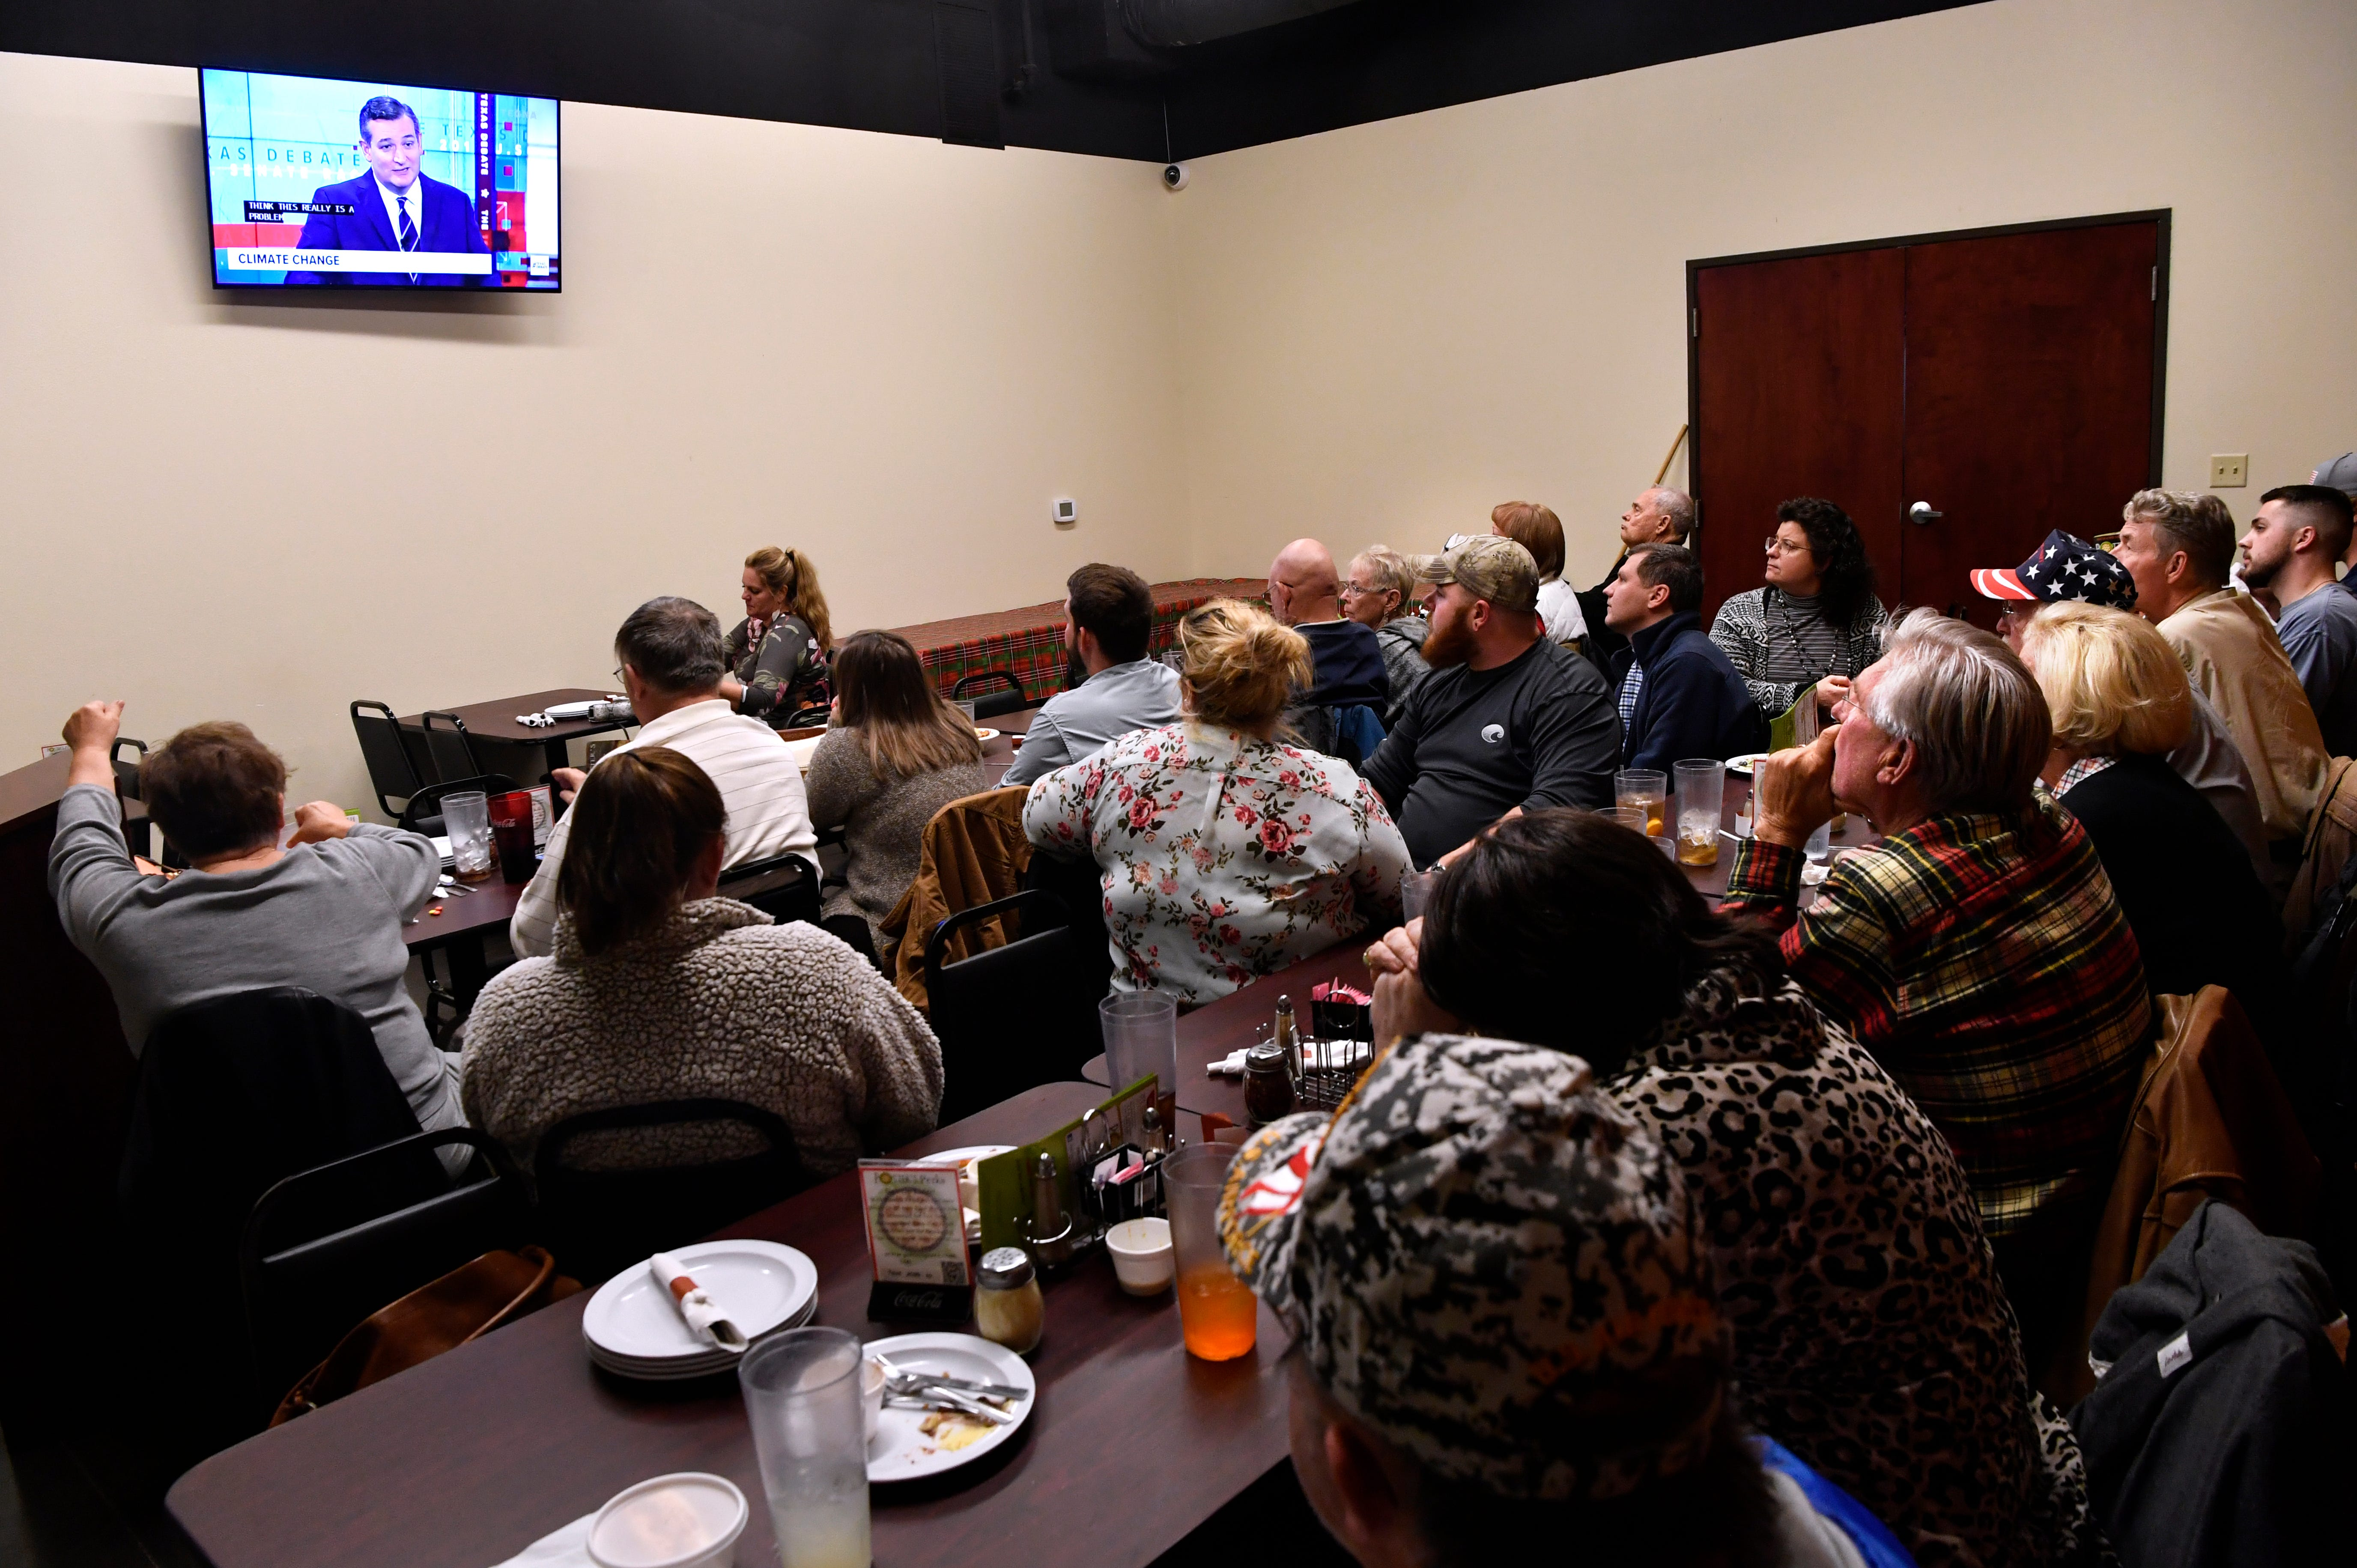 People watch the U.S. Senate debate between Ted Cruz and Beto O'Rourke during a Republican watch party at Potter's Pizza Tuesday Oct. 16, 2018.